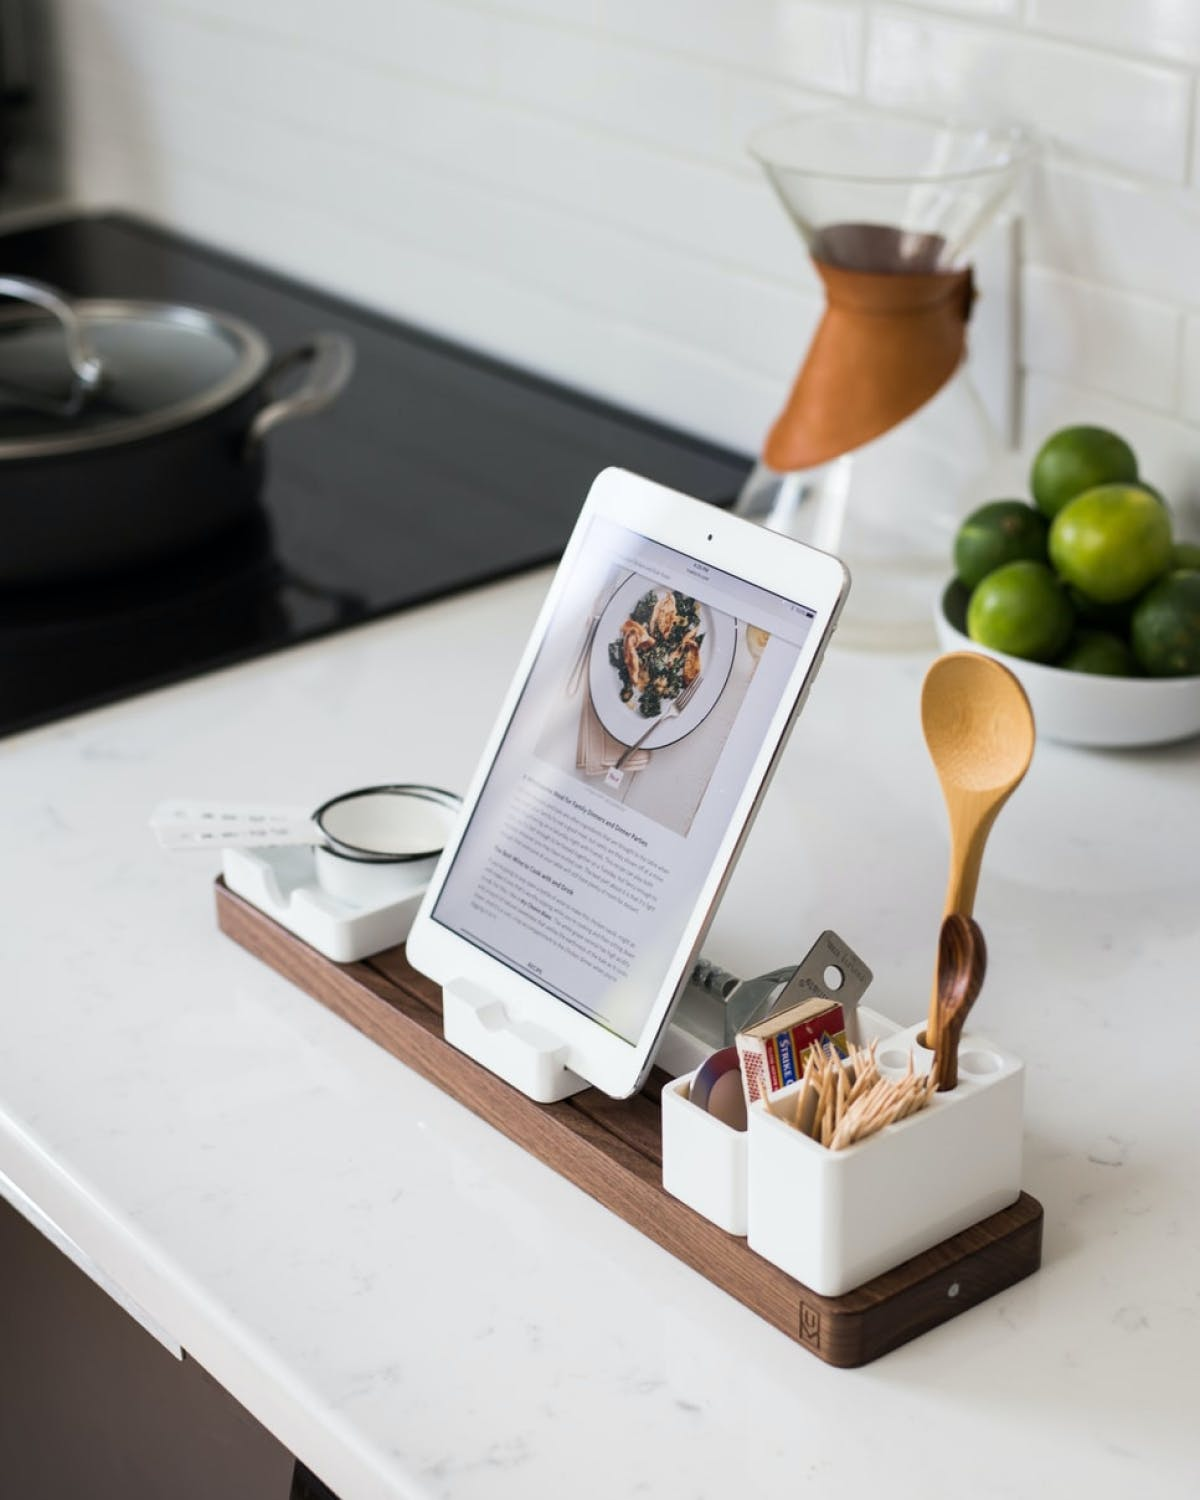 Tablet standing on a marbel kitchen countertop